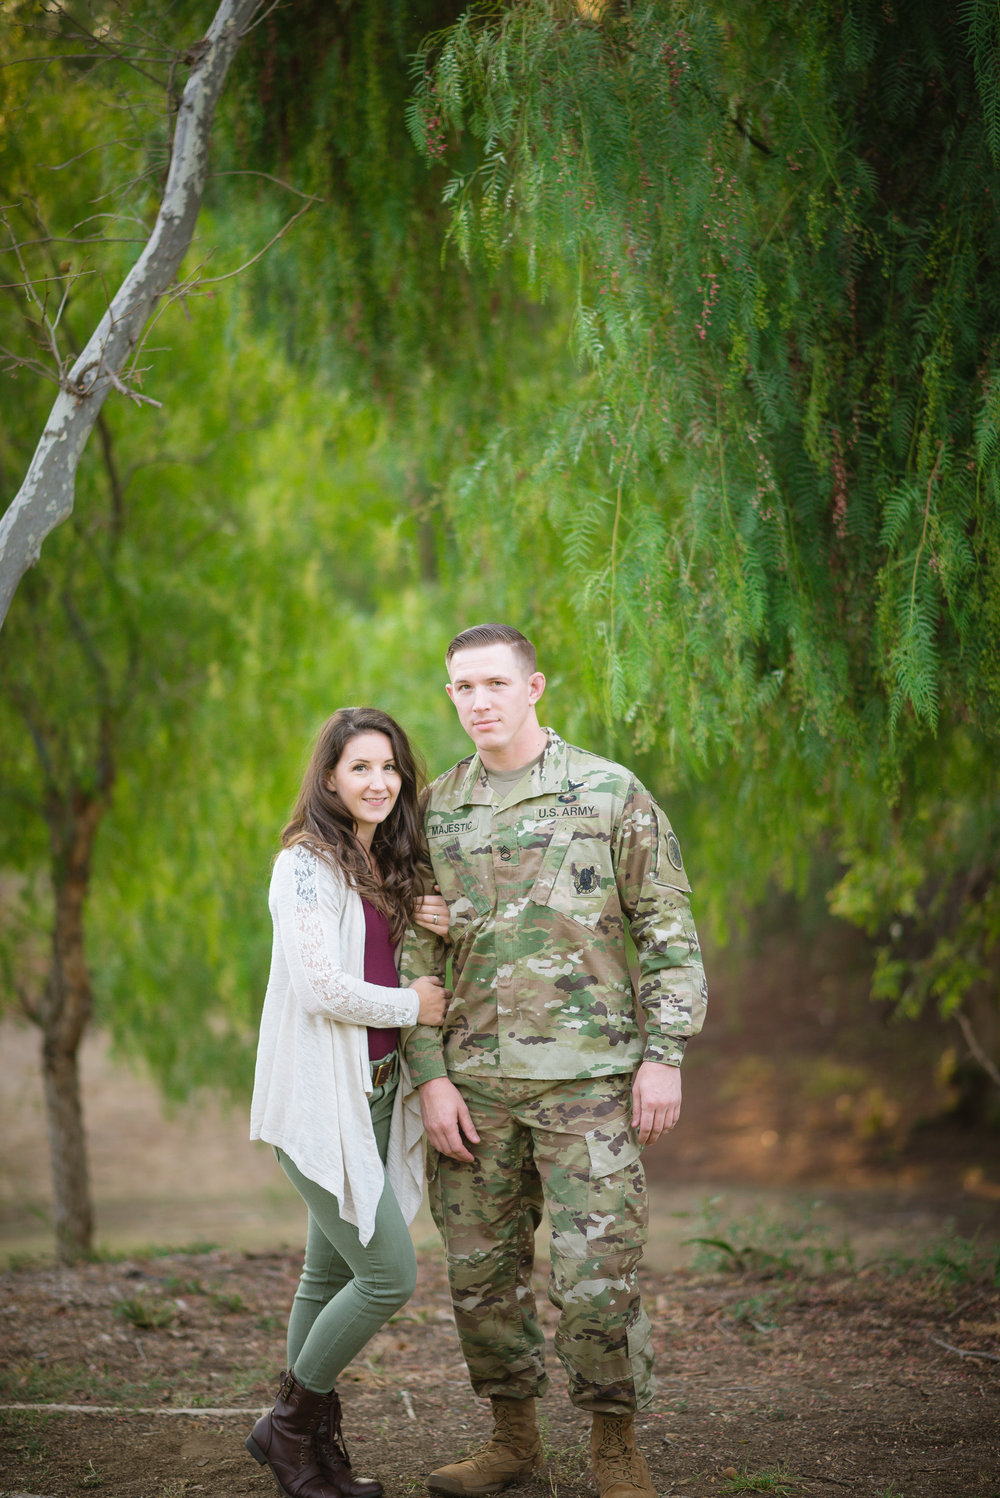 Will, Robyn's hunky hubby is a member of the Armed Forces. His actual title is Sergeant First Class Majestic. How amazing is that?! He and his family have sacrificed SO much for our freedom, and I am so beyond thankful for families like them. Always remember, freedom is not free. <3